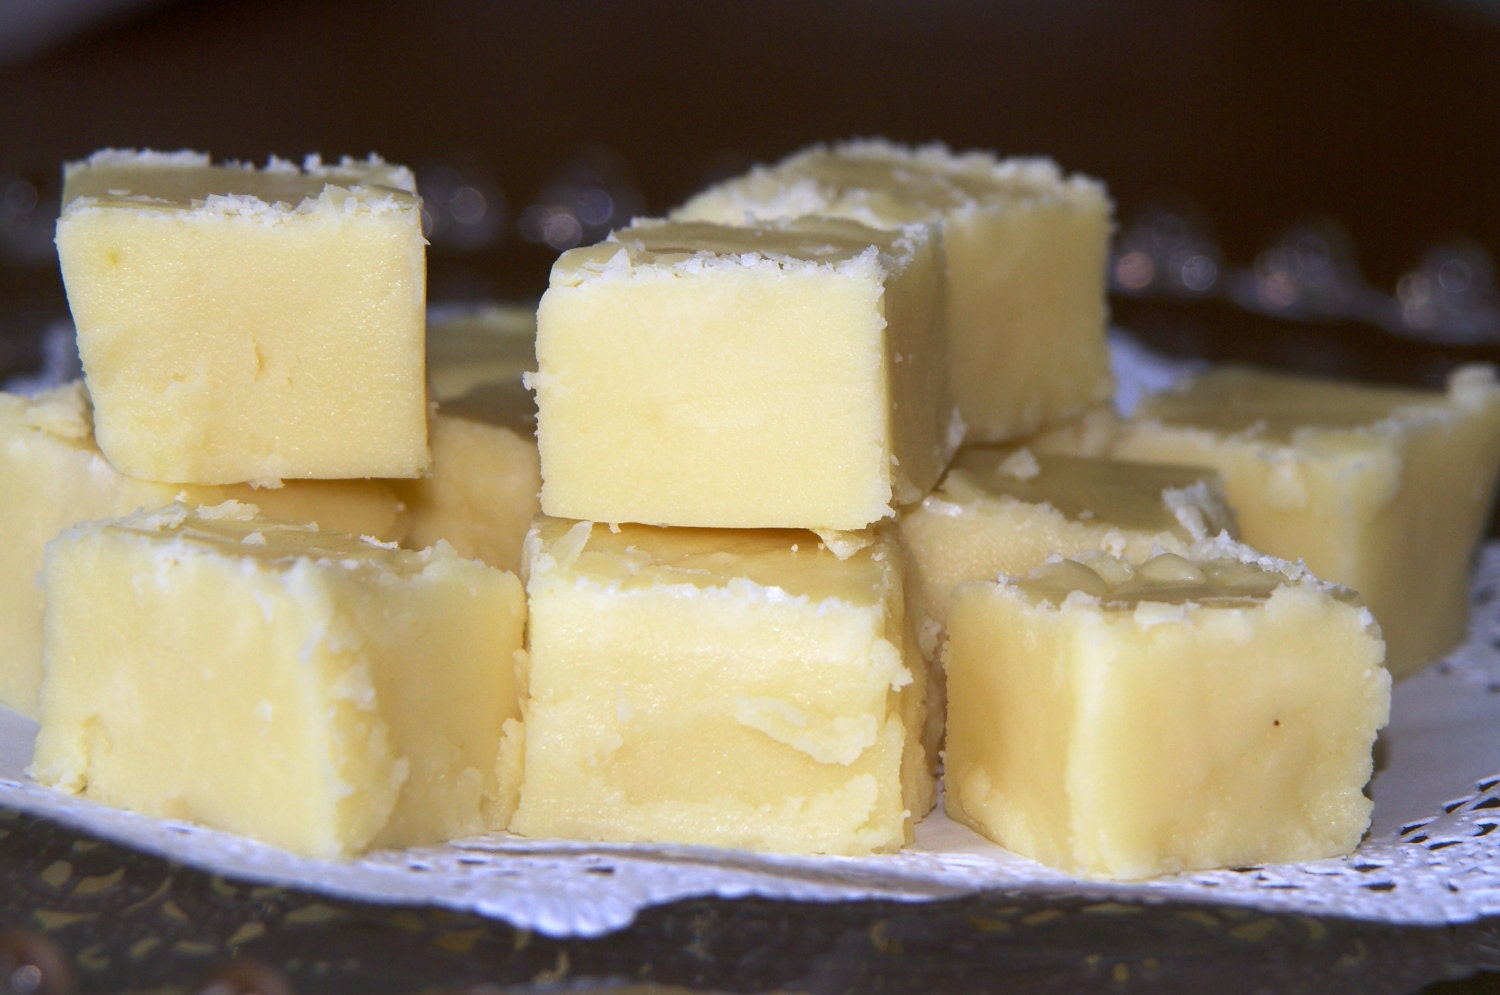 Homemade Lemon Fudge - One Pound